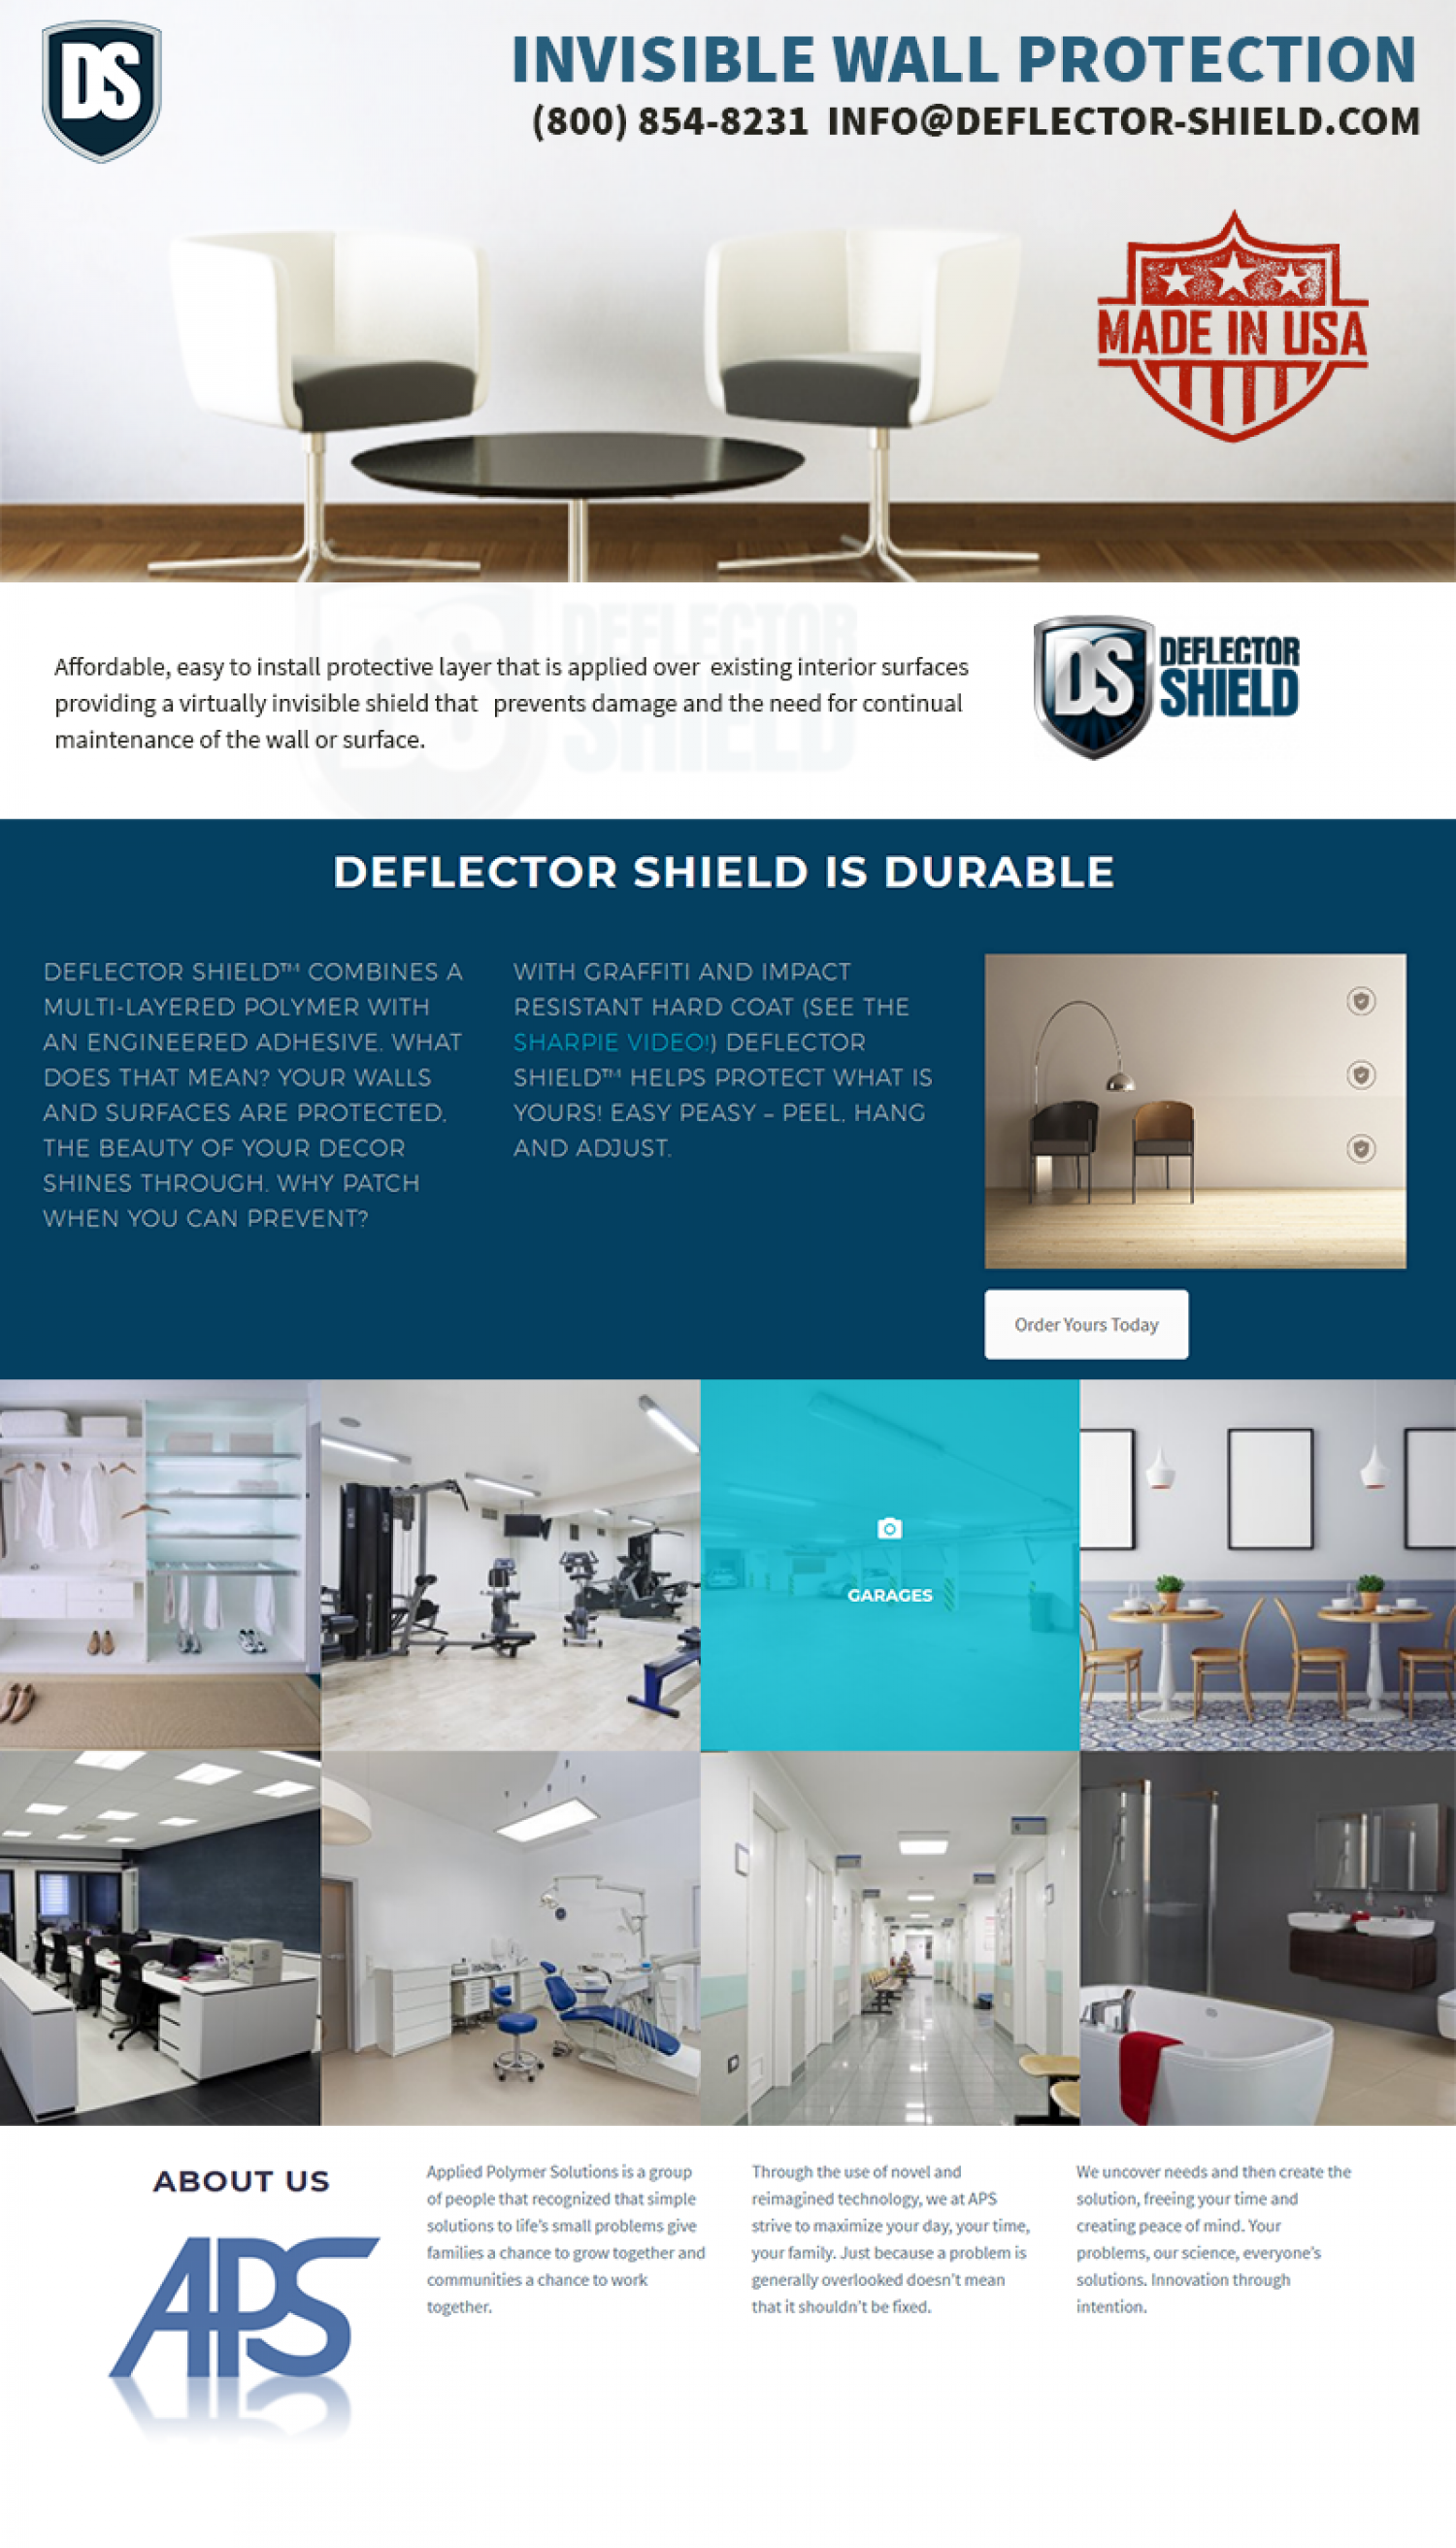 invisible wall protection -  Deflector Shield Infographic